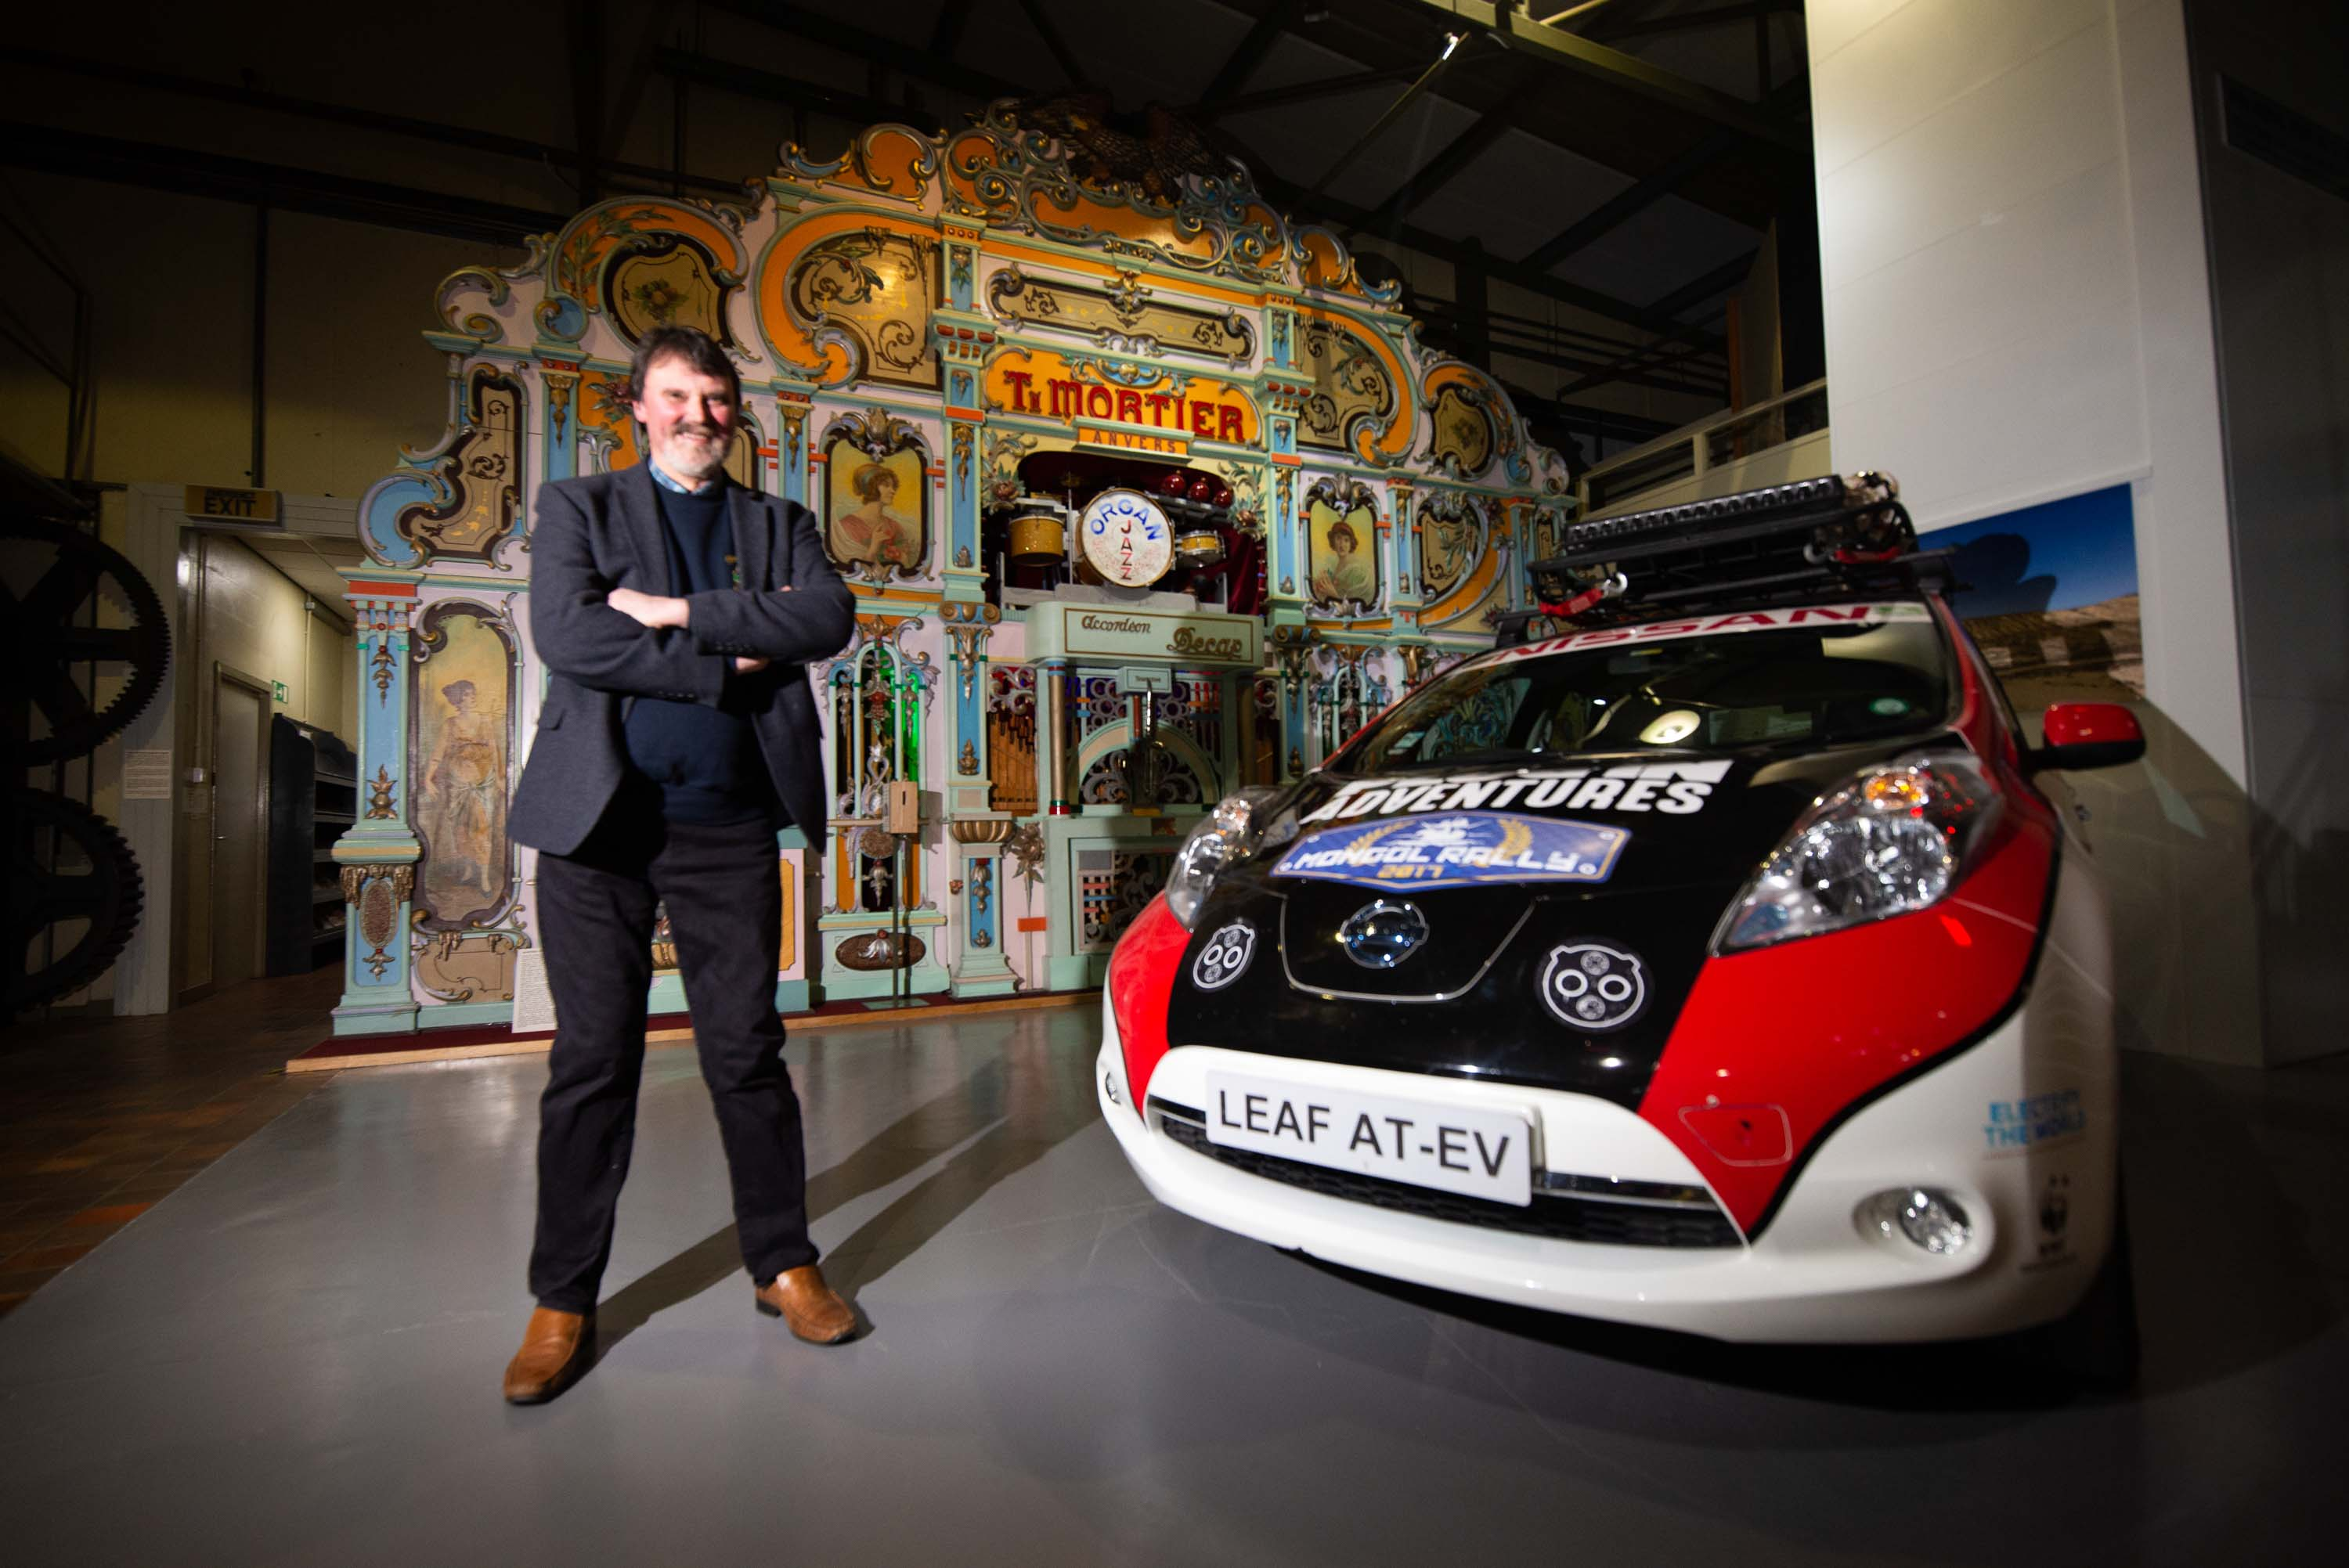 Mike Ward with the new exhibitions. He is pictured with the new Nissan Leaf rally car.